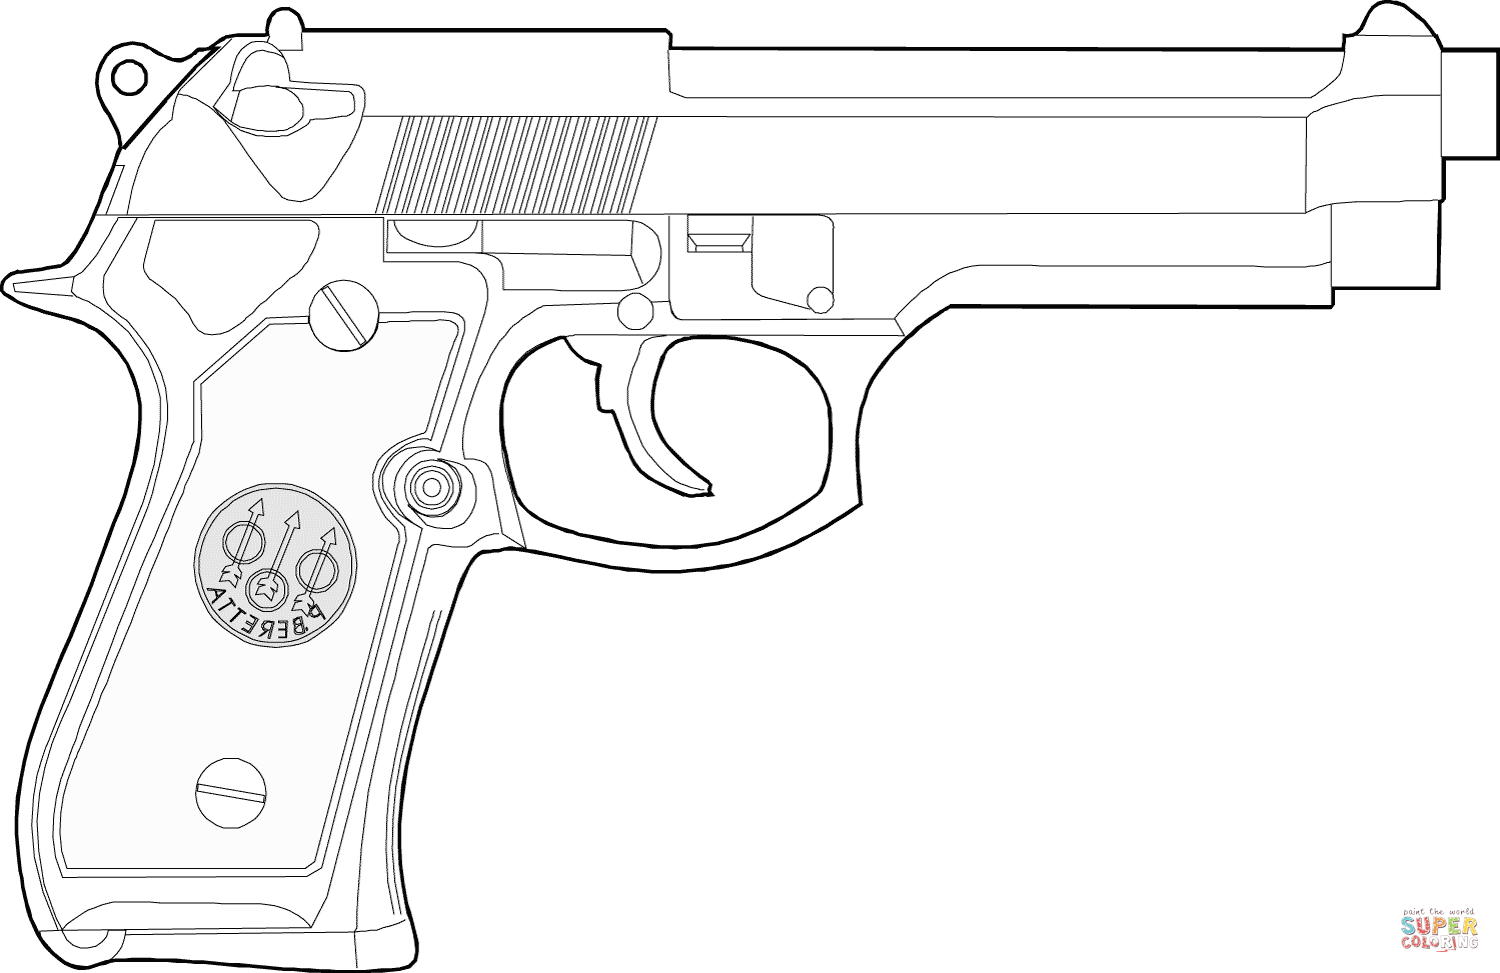 gun colouring pictures beretta handgun coloring page free printable coloring pages gun pictures colouring